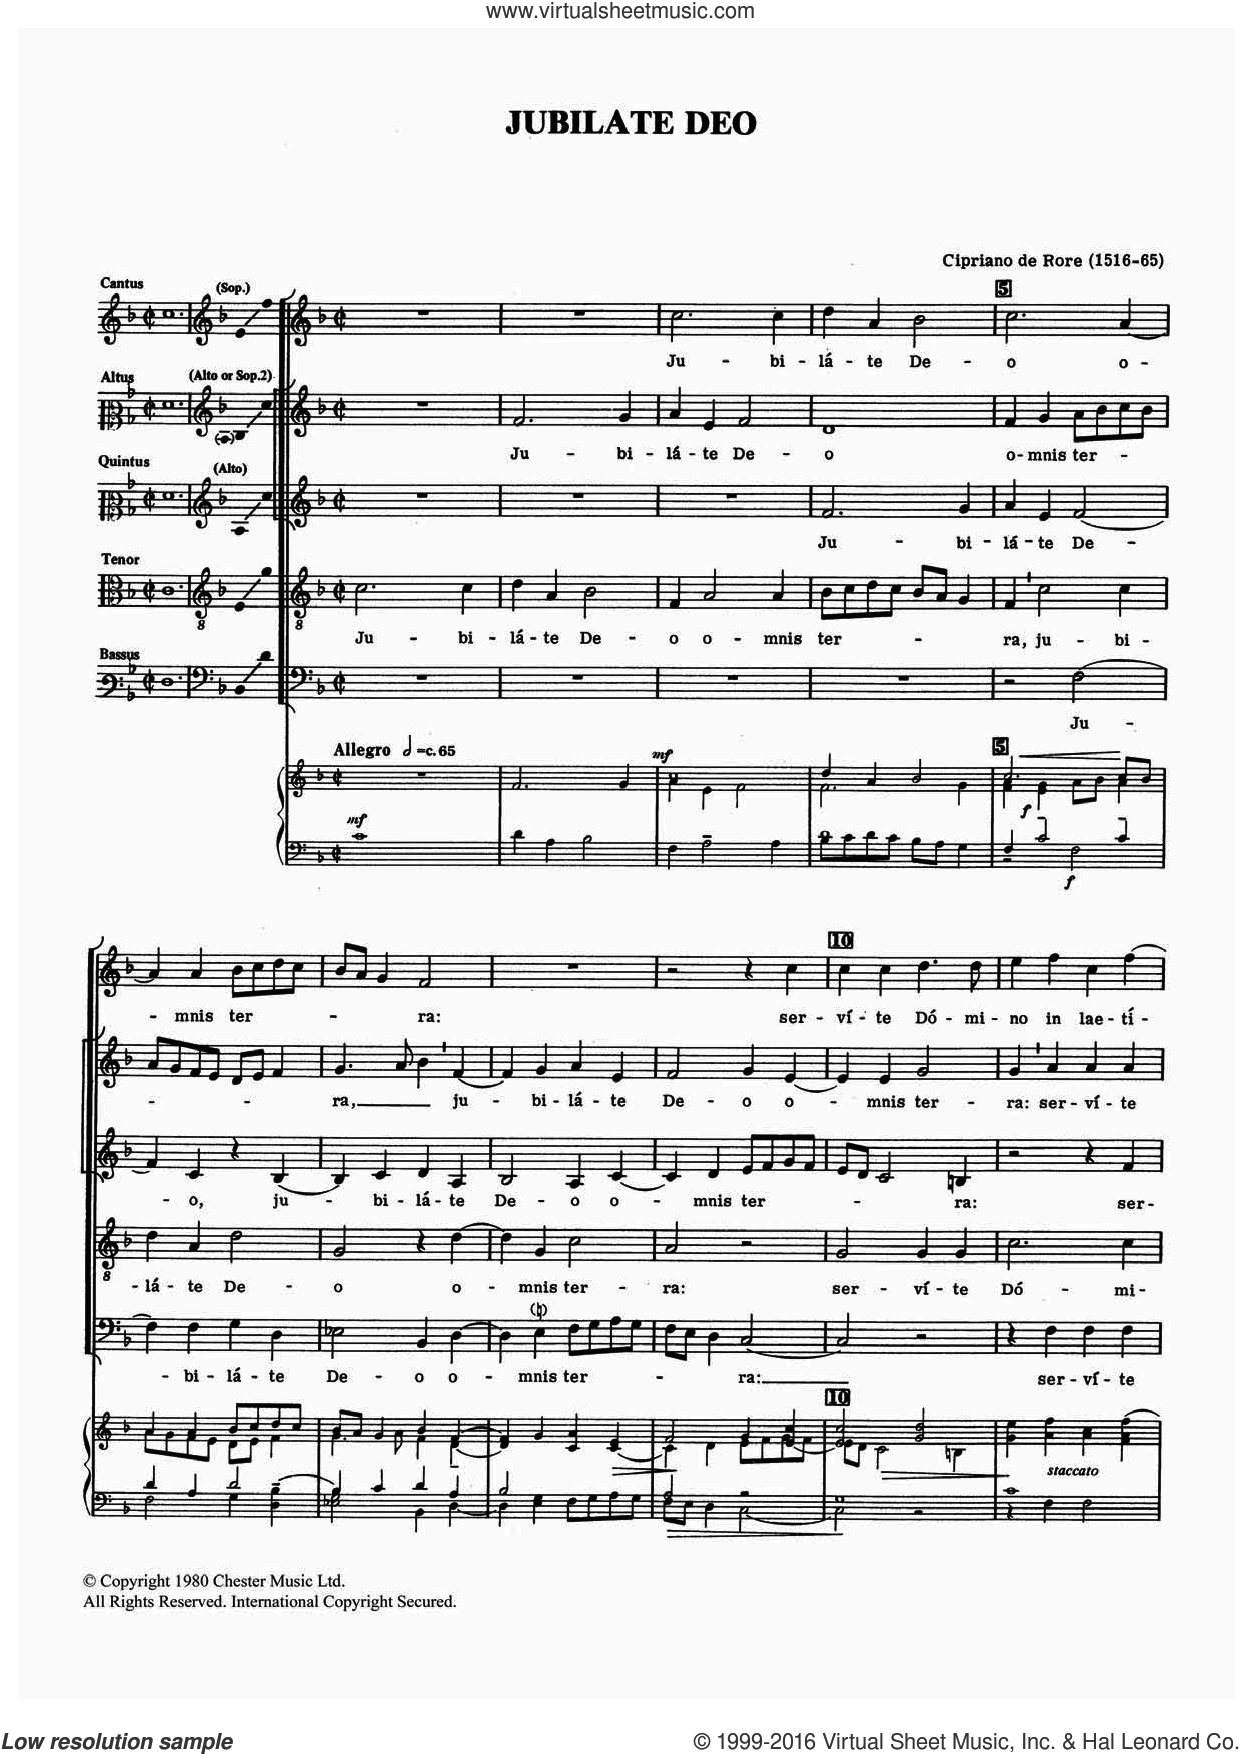 Jubilate Deo sheet music for voice, piano or guitar by Cipriano de Rore